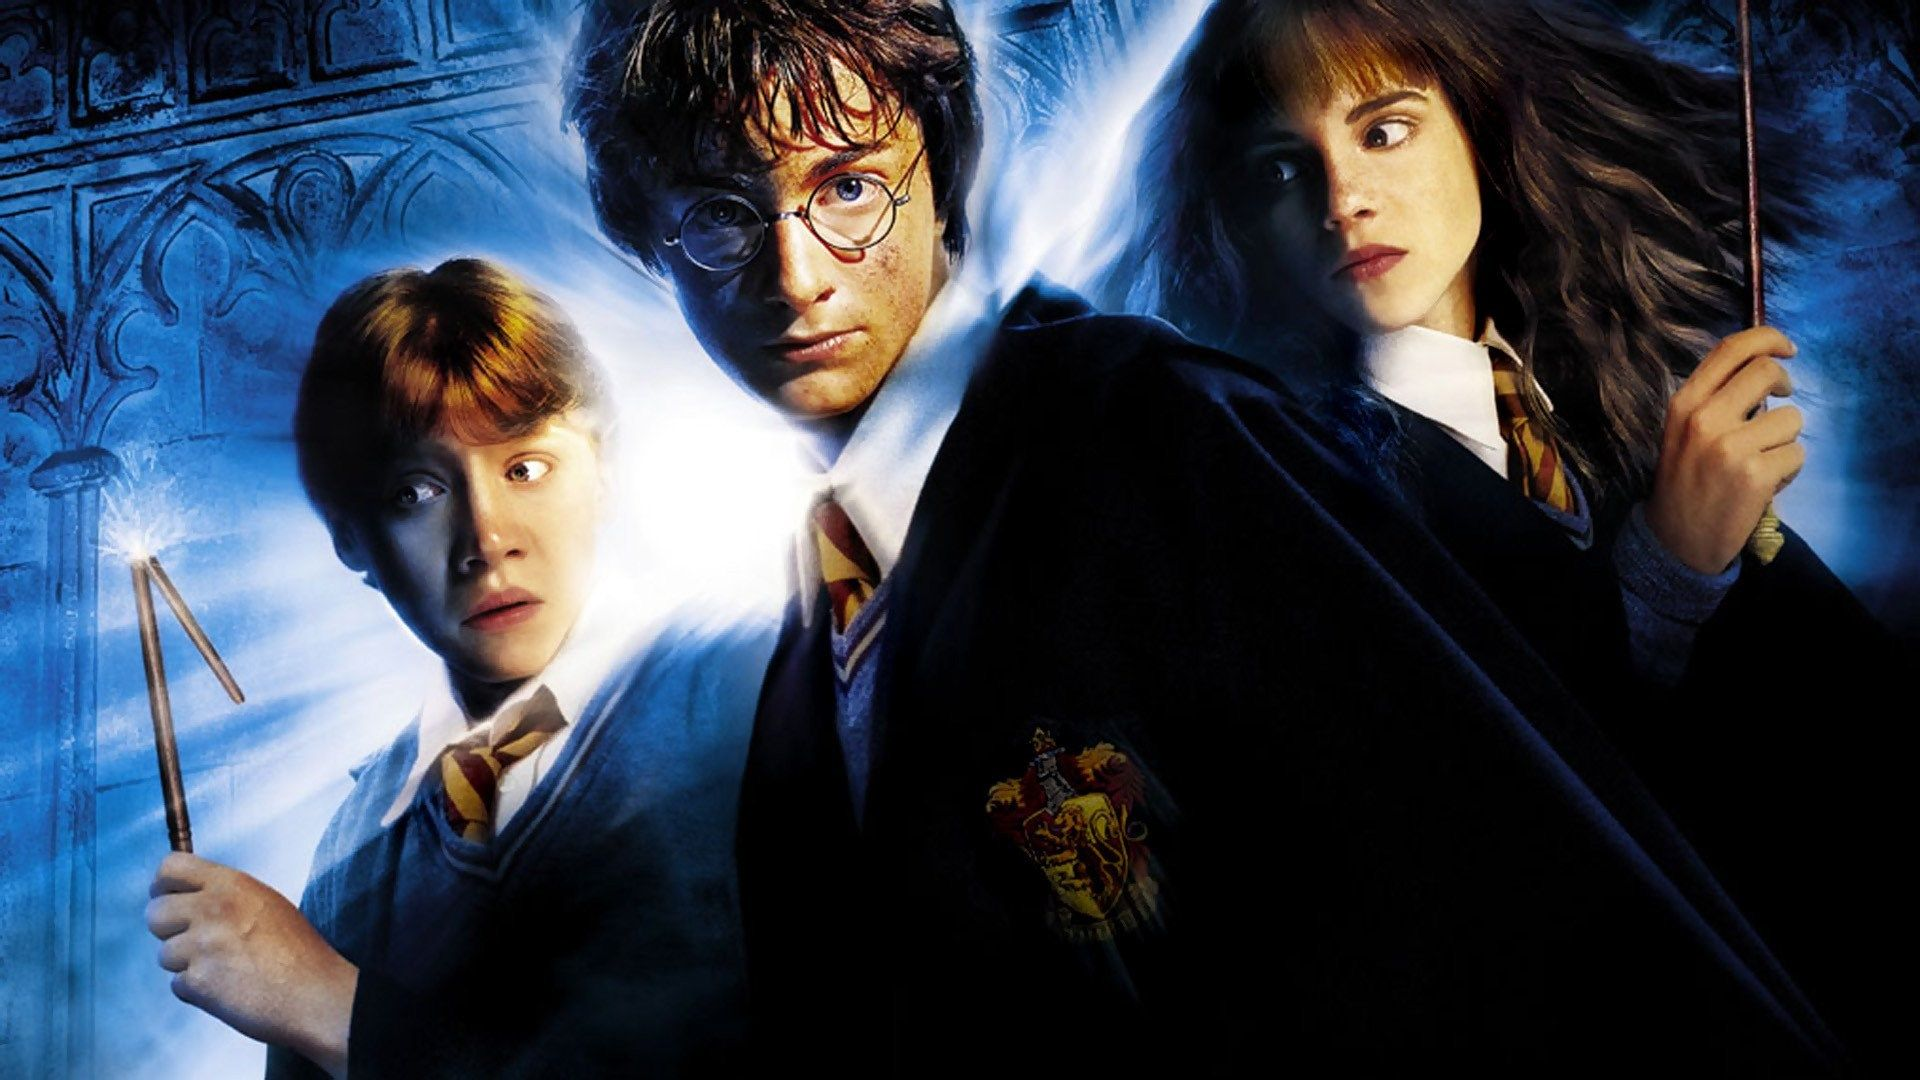 1615826, HD Widescreen Wallpapers - harry potter and the chamber of on